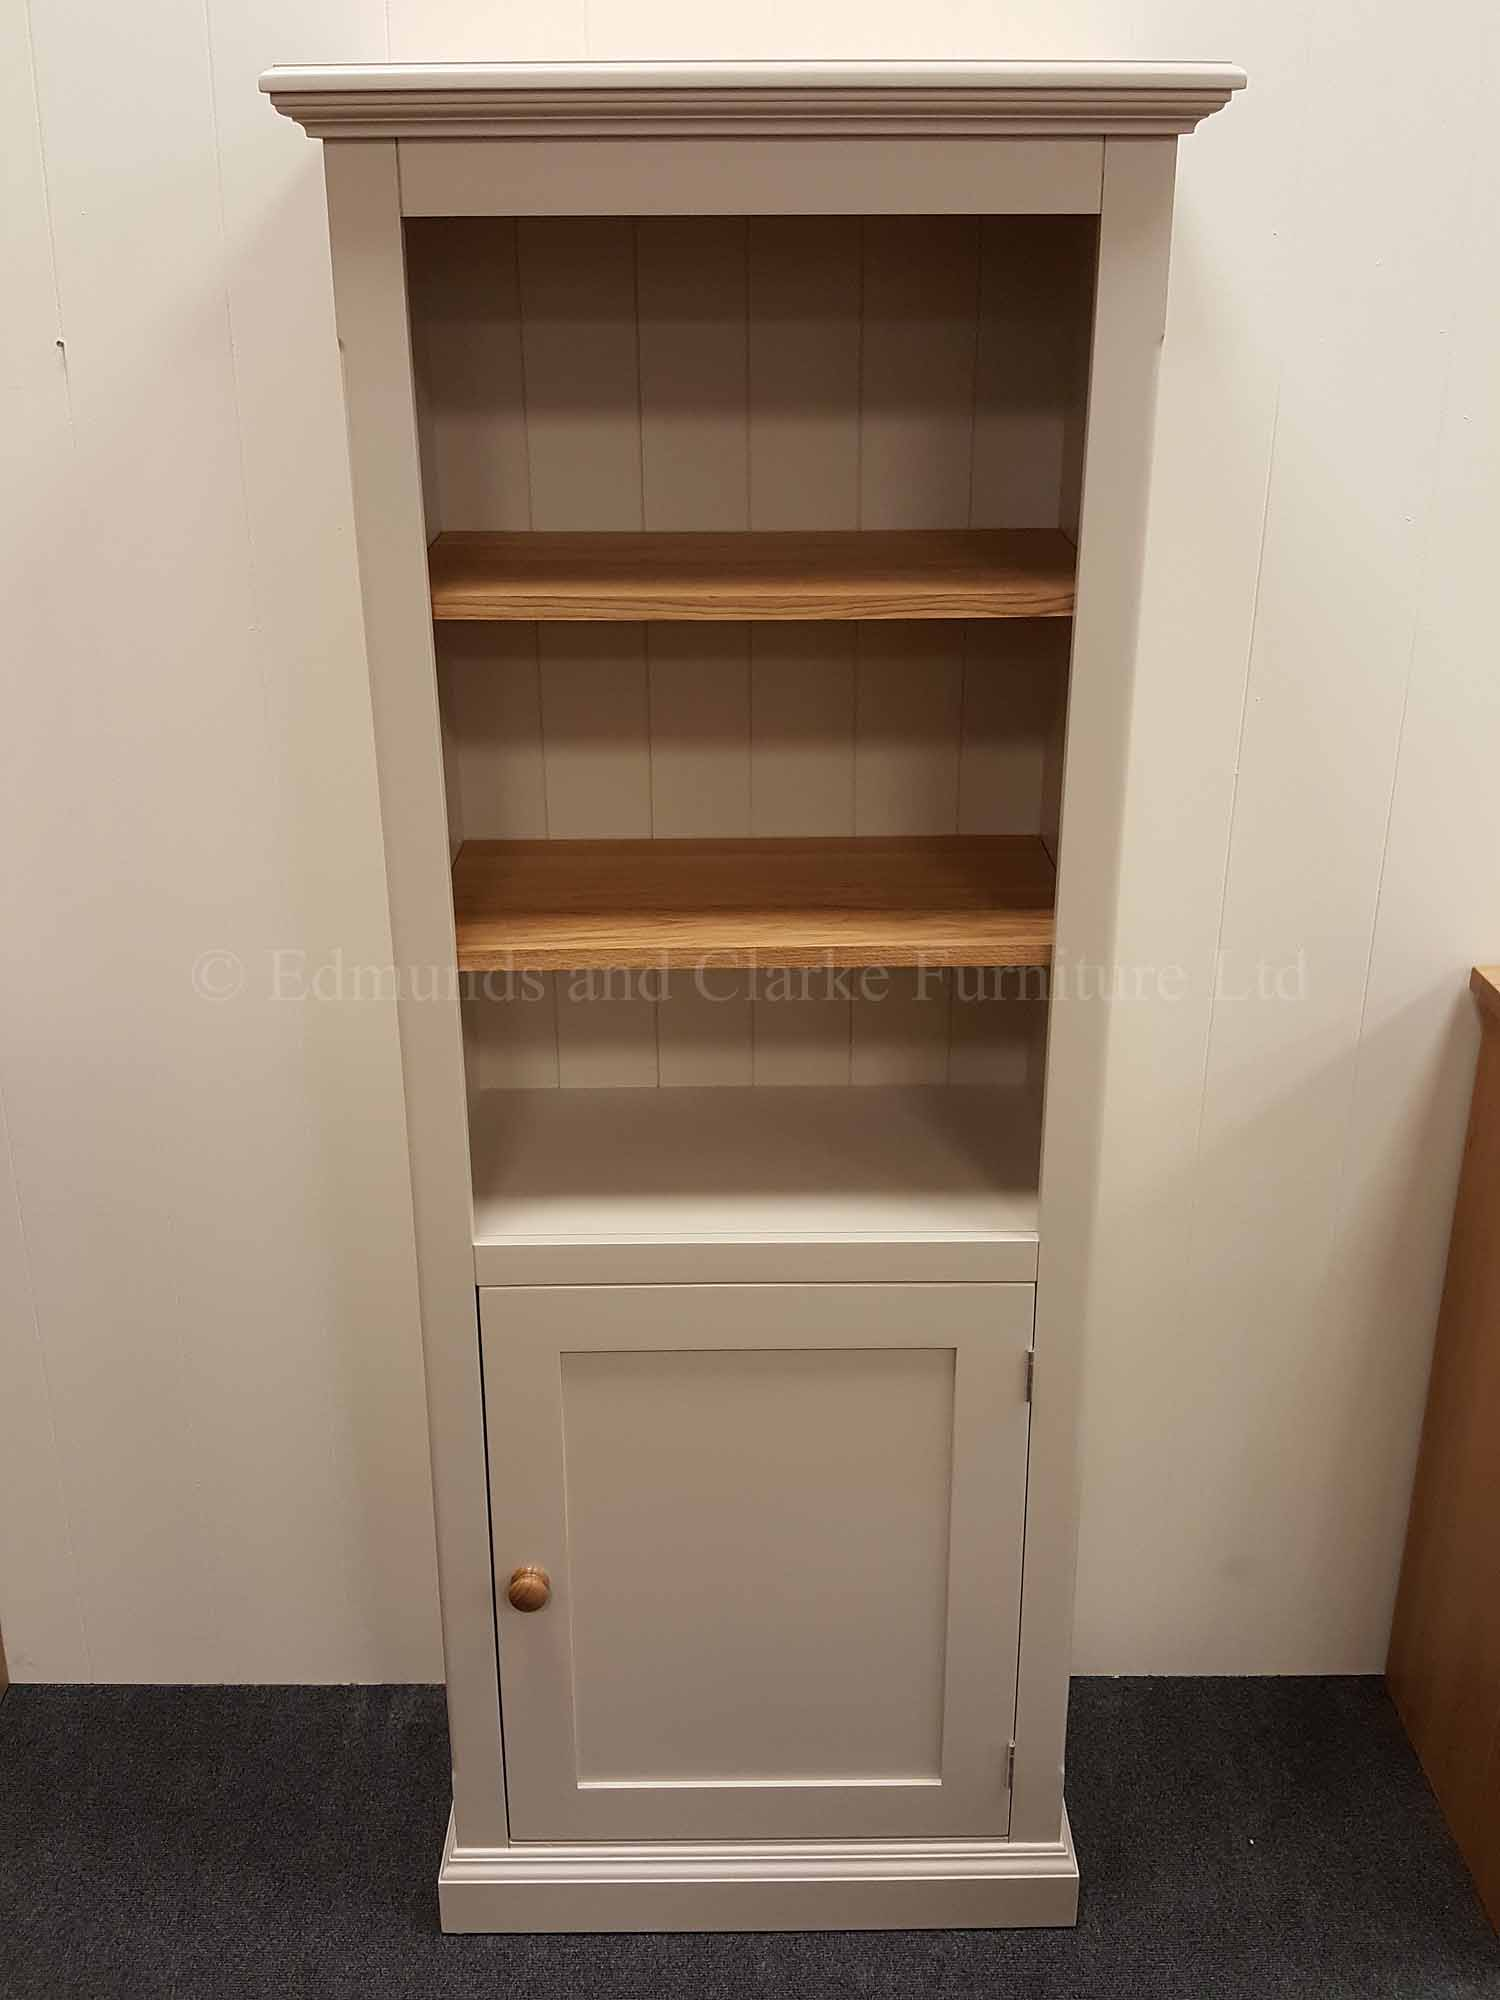 Painted narrow one door bookcase two adjustable shelves with door below